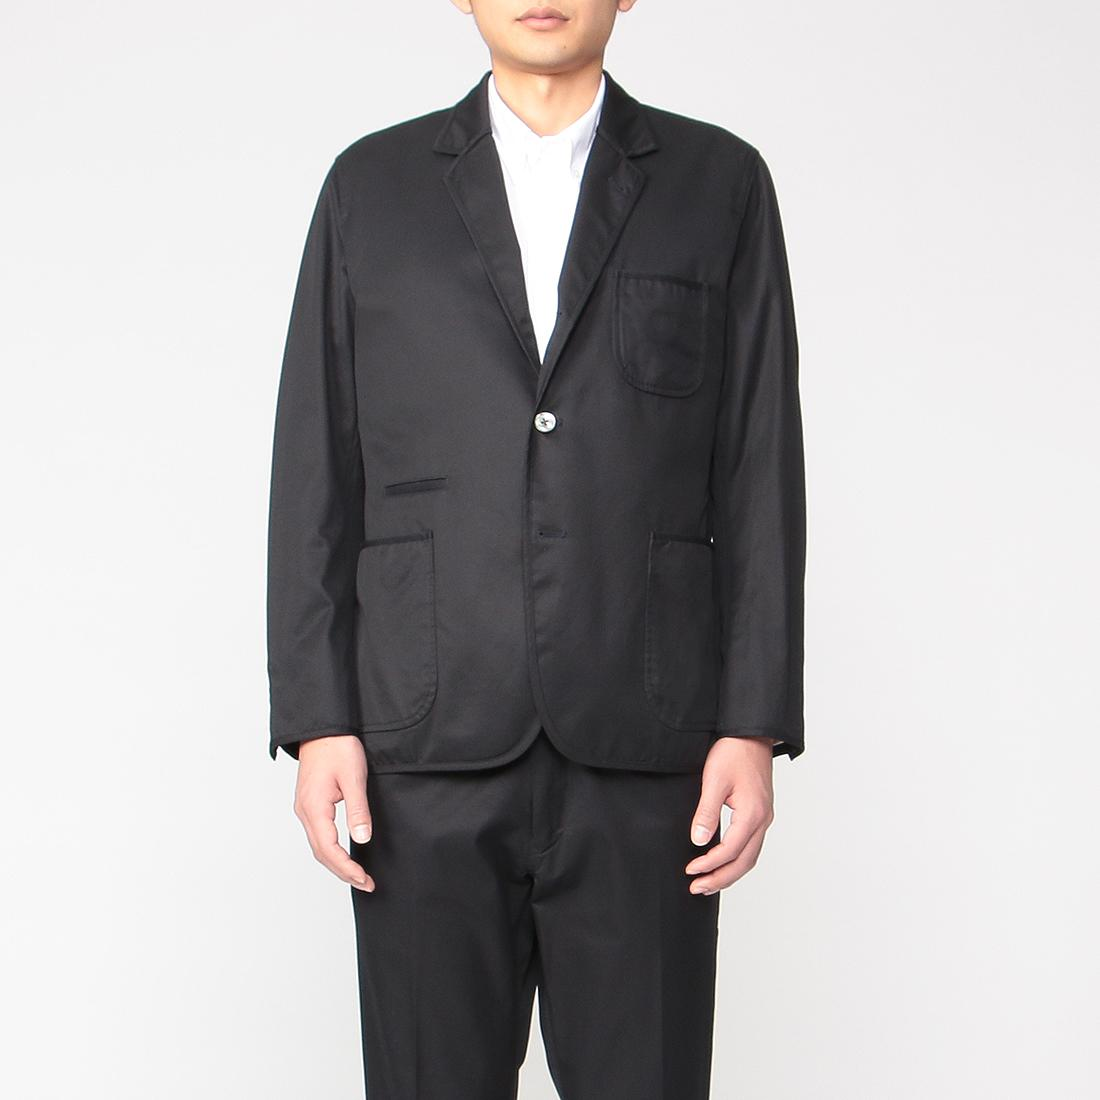 BKT by Brooklyn Tailors Cotton Sportcoat: Navy